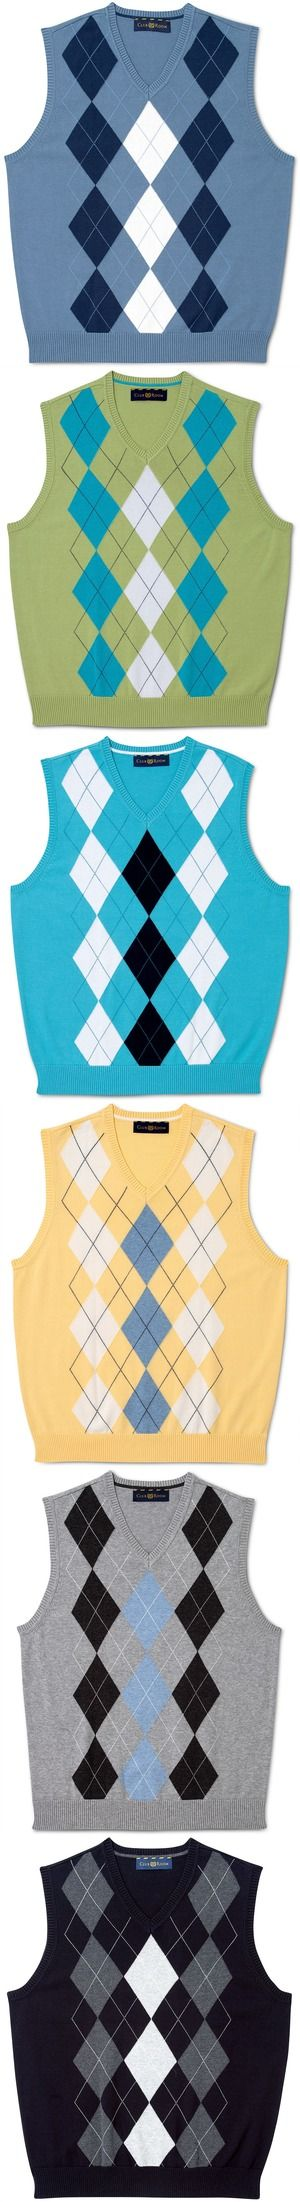 Check out these argyle sweater vests on sale from Club Room @Macy's Official. Which one?